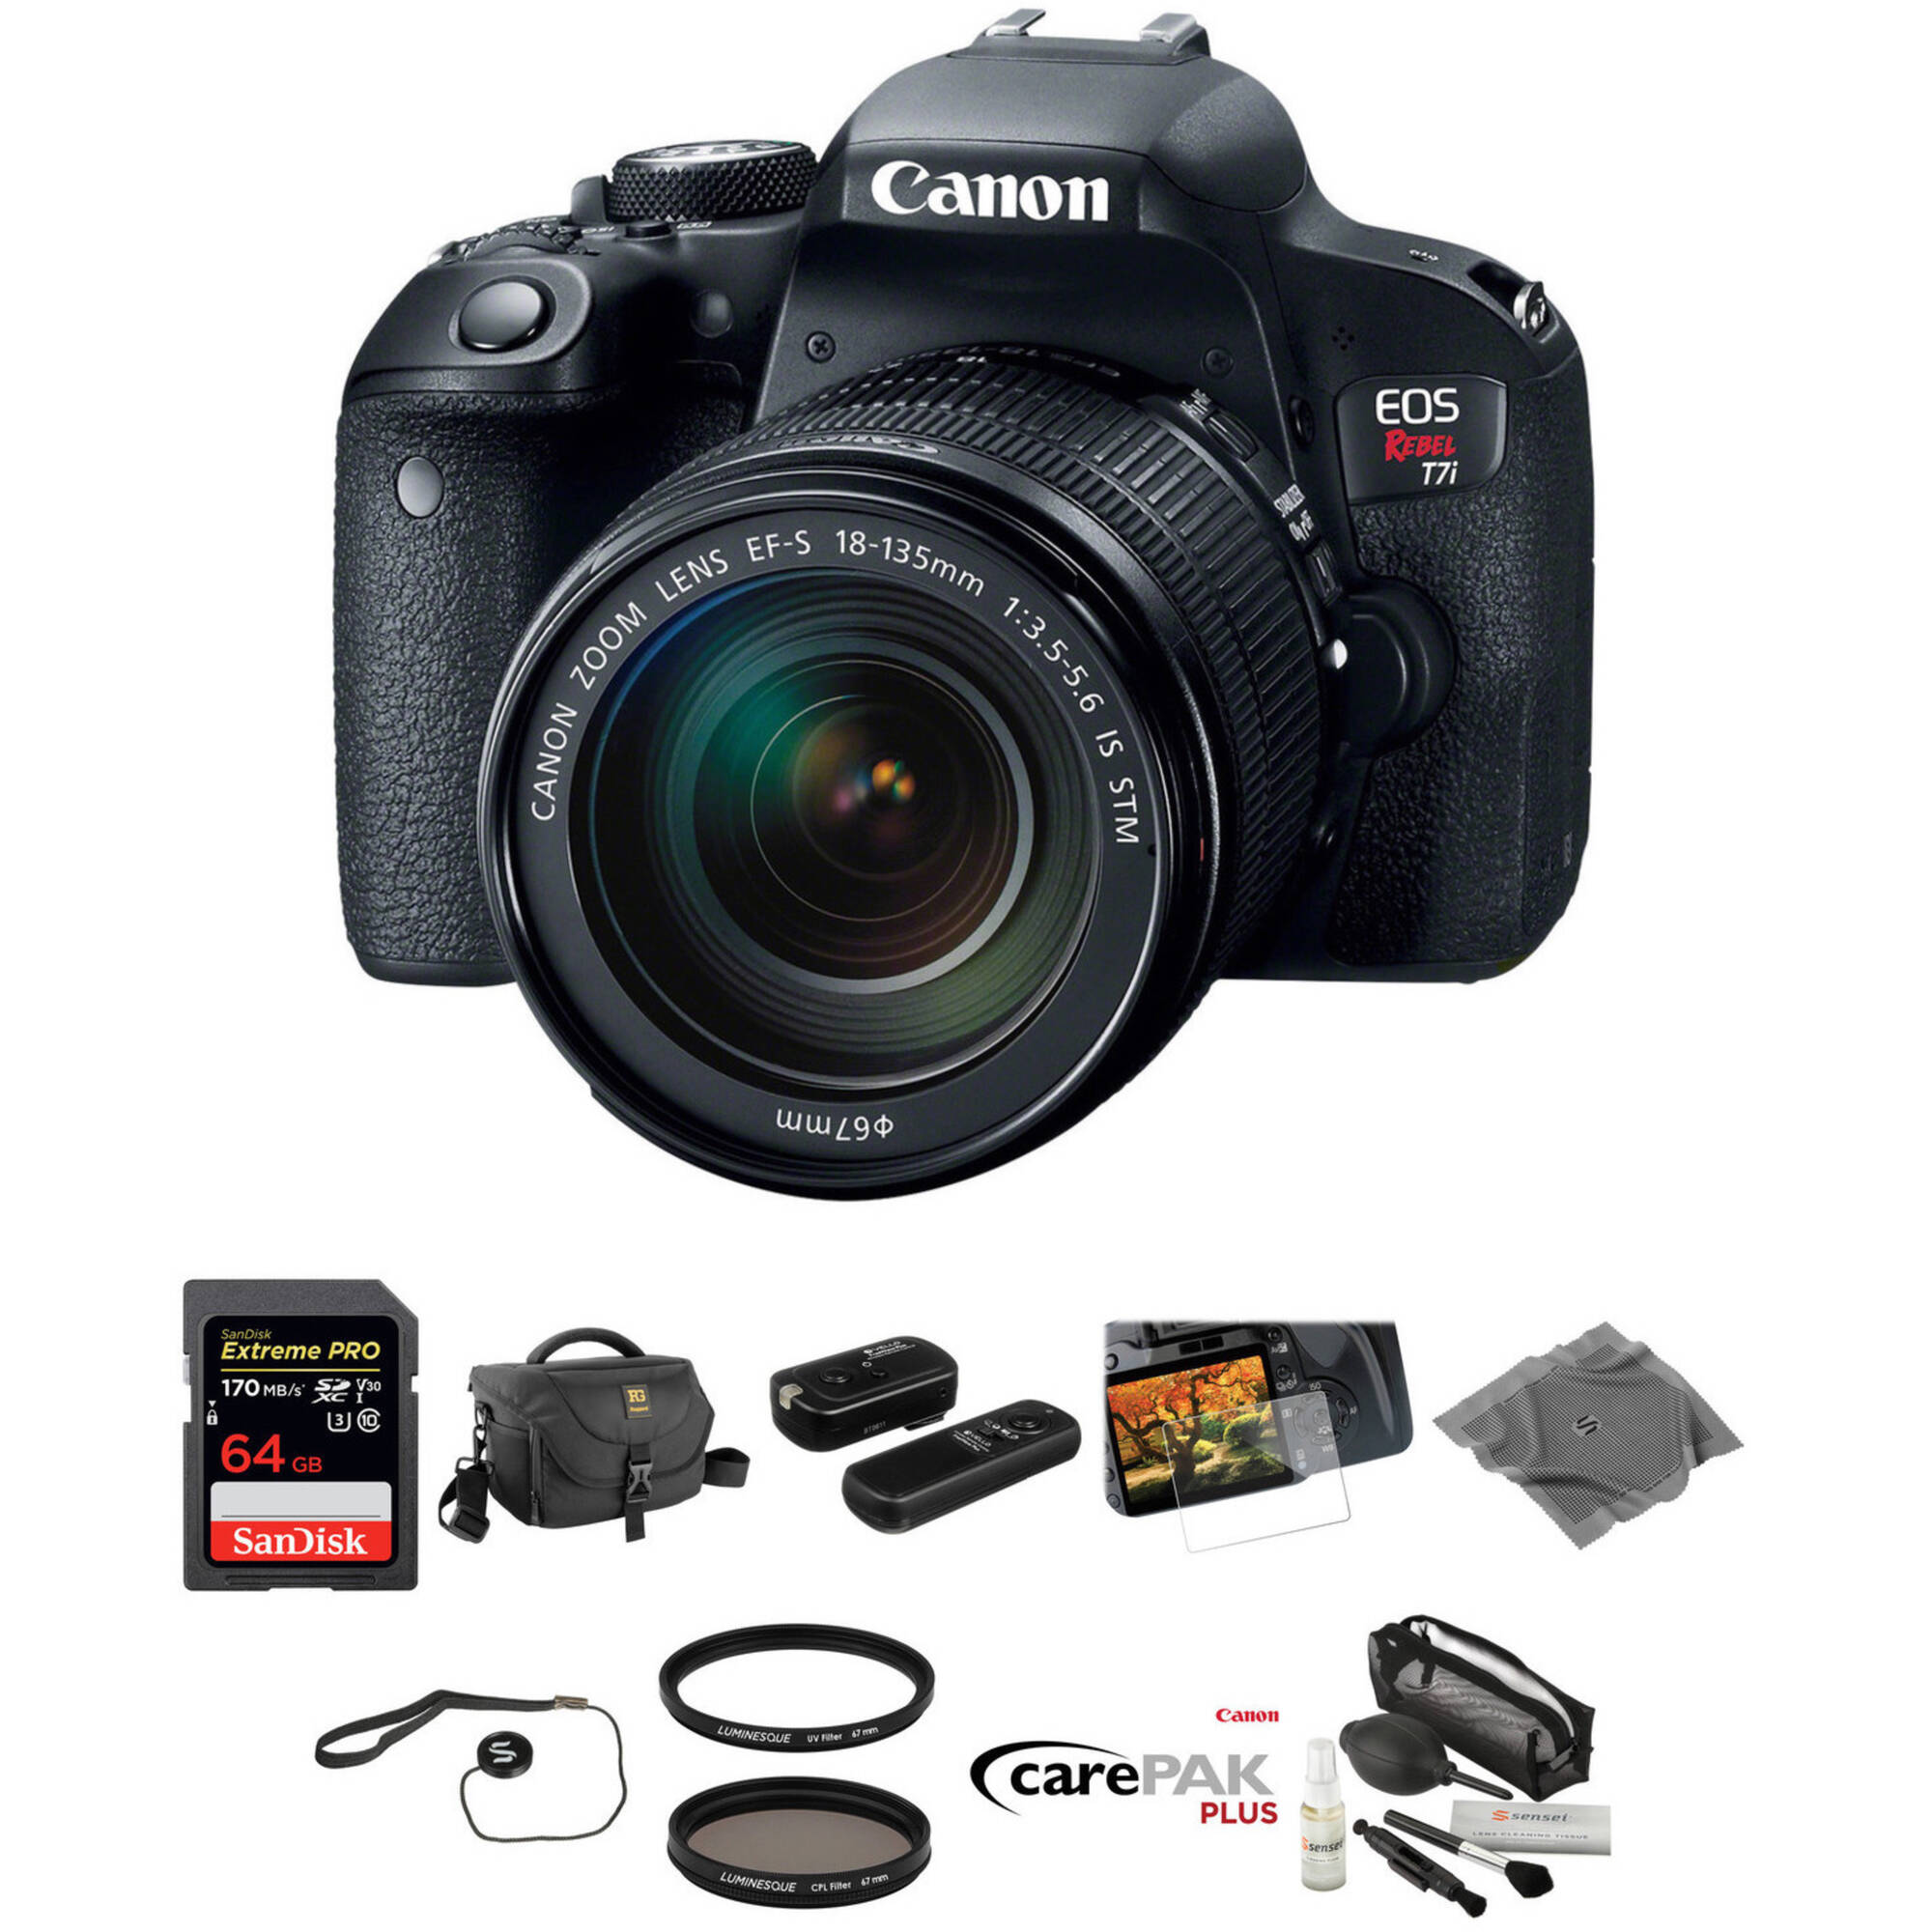 Canon EOS Rebel T7i DSLR Camera with 18-135mm Lens Deluxe Kit